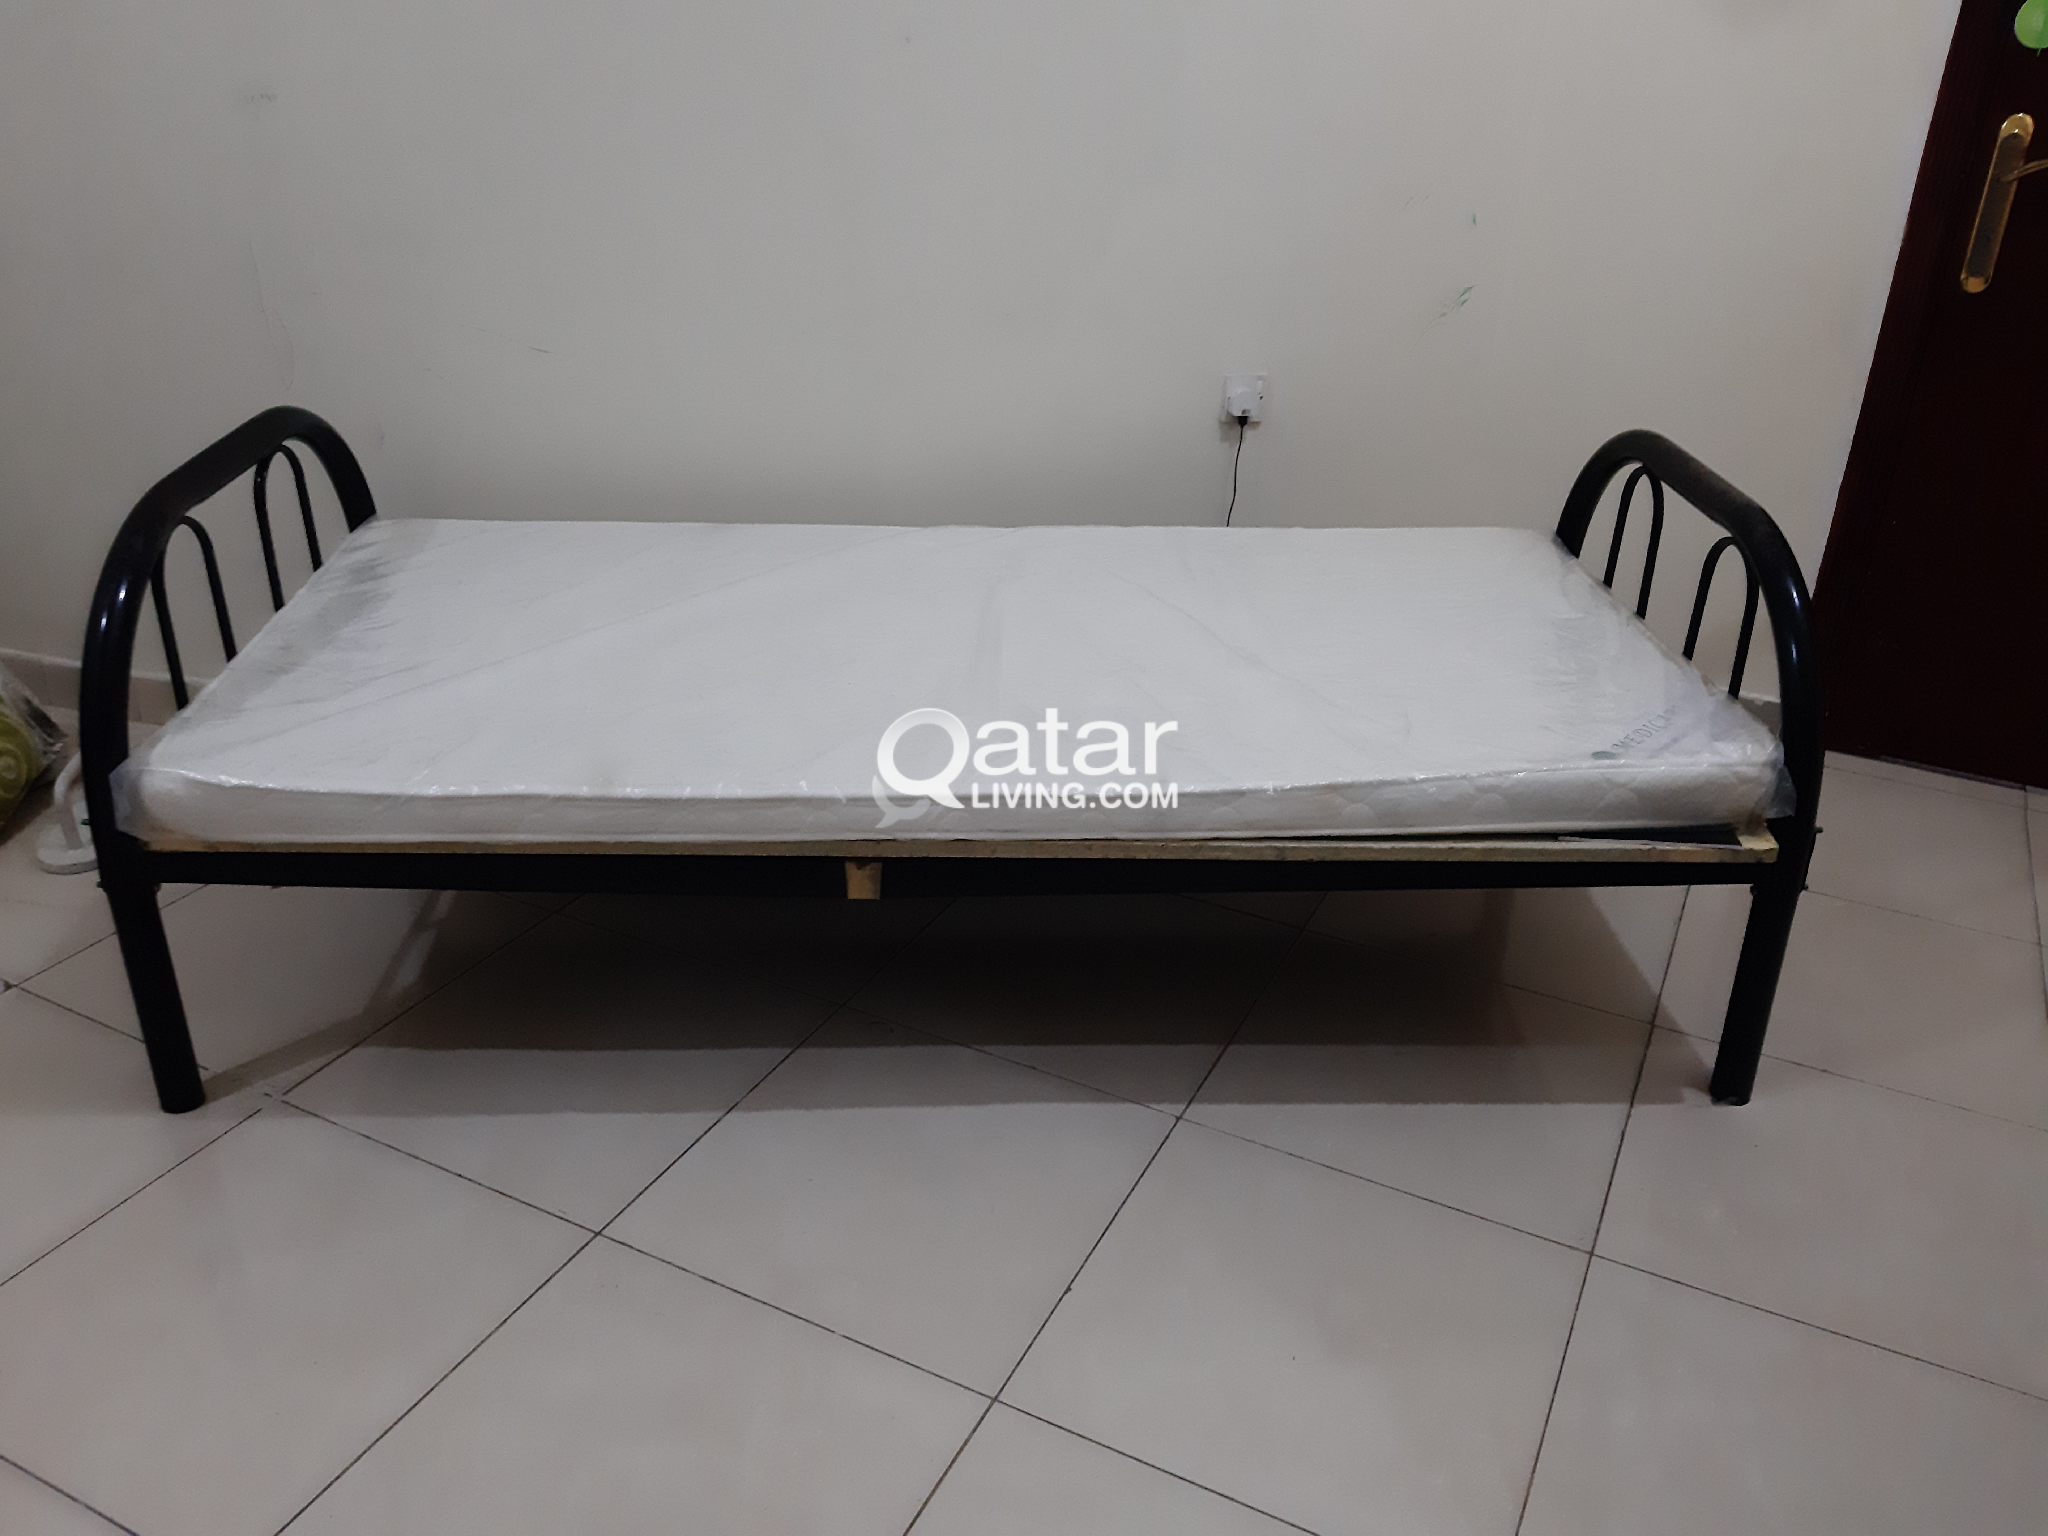 separation shoes 094d7 71e16 Single Cart bed with new medical matress (QR 130) | Qatar Living